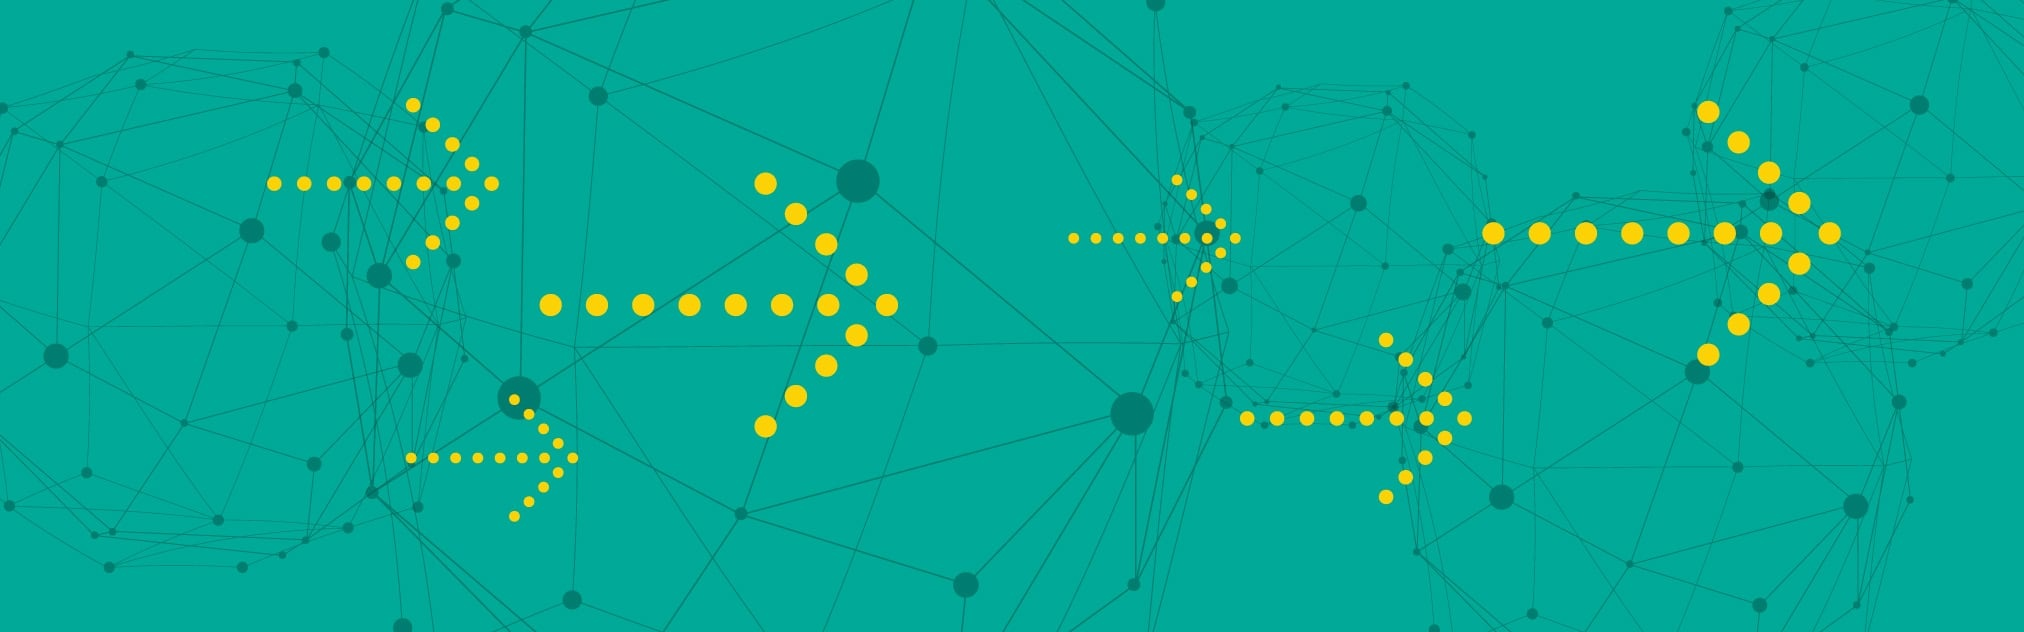 Graphic of yellow arrows over a teal background